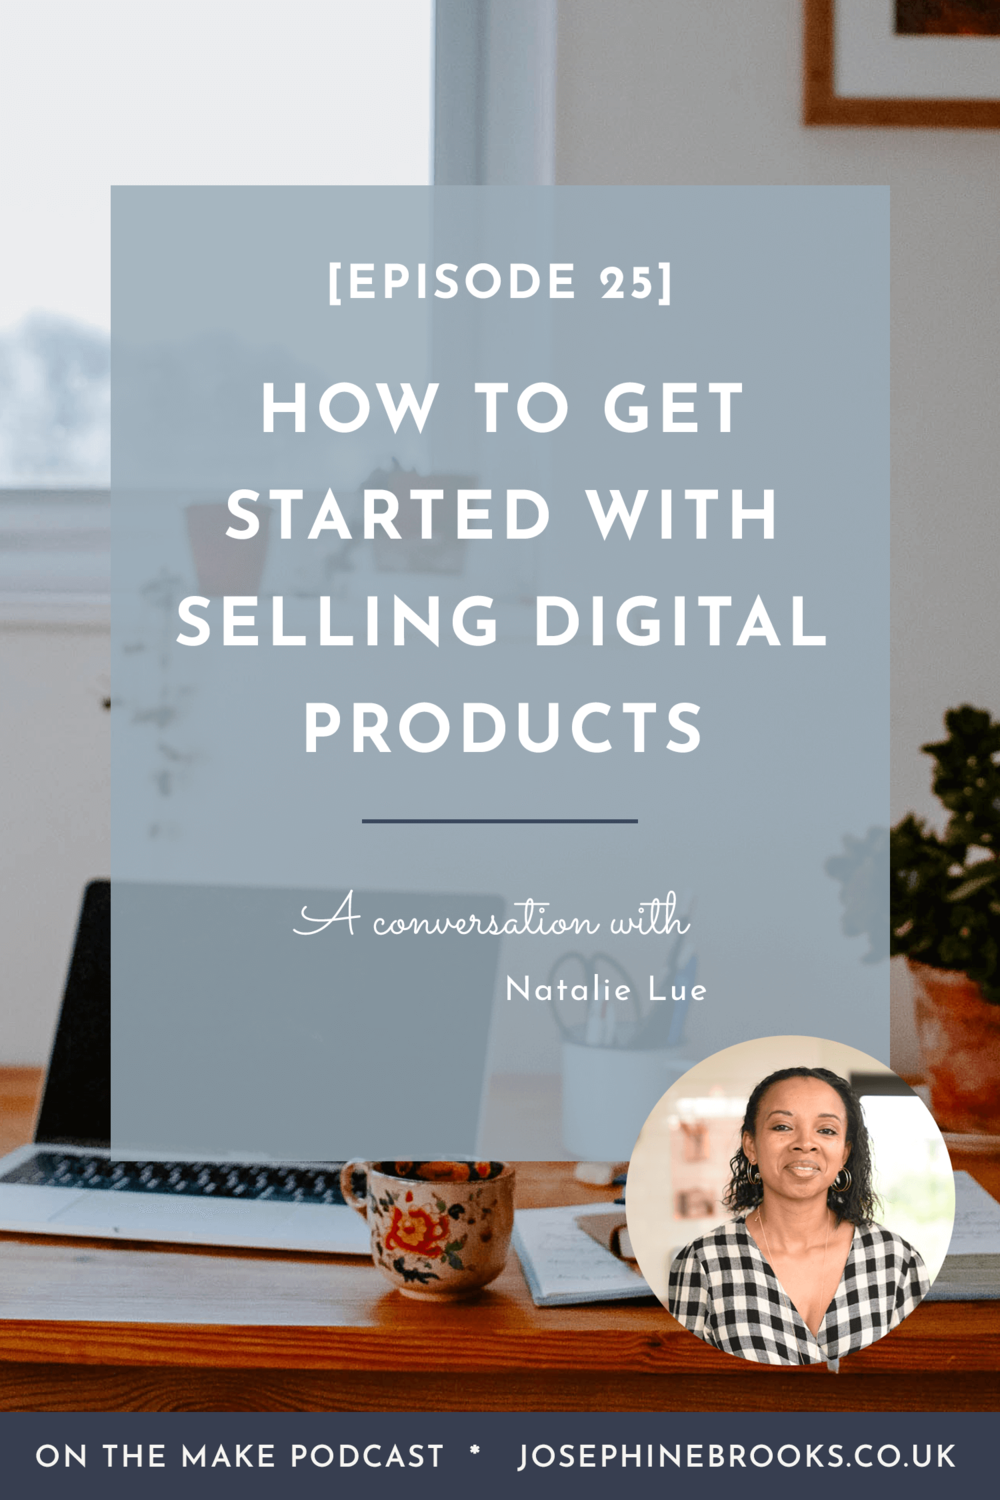 How to get started with selling digital products with Natalie Lue